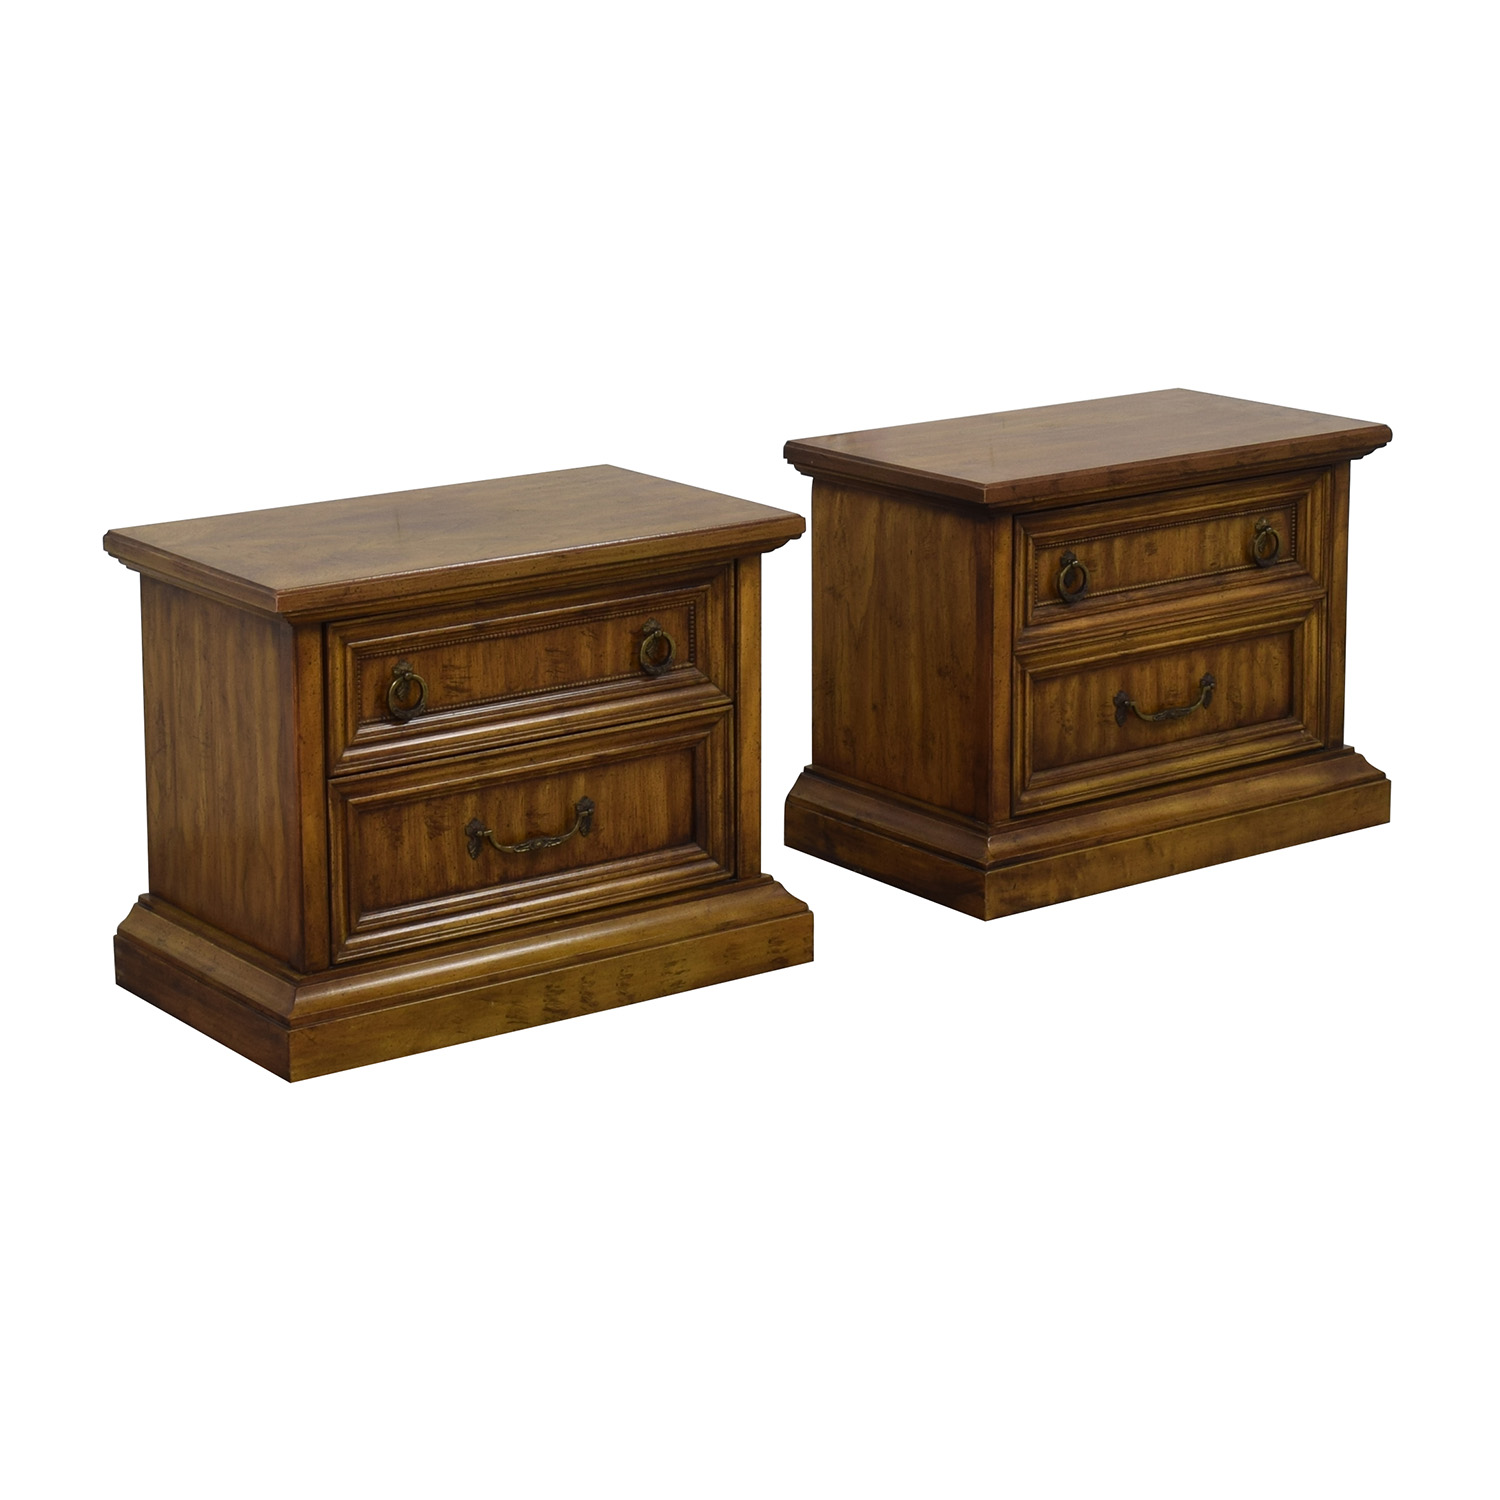 Stanley Furniture Stanley Furniture Two-Drawer End Tables price